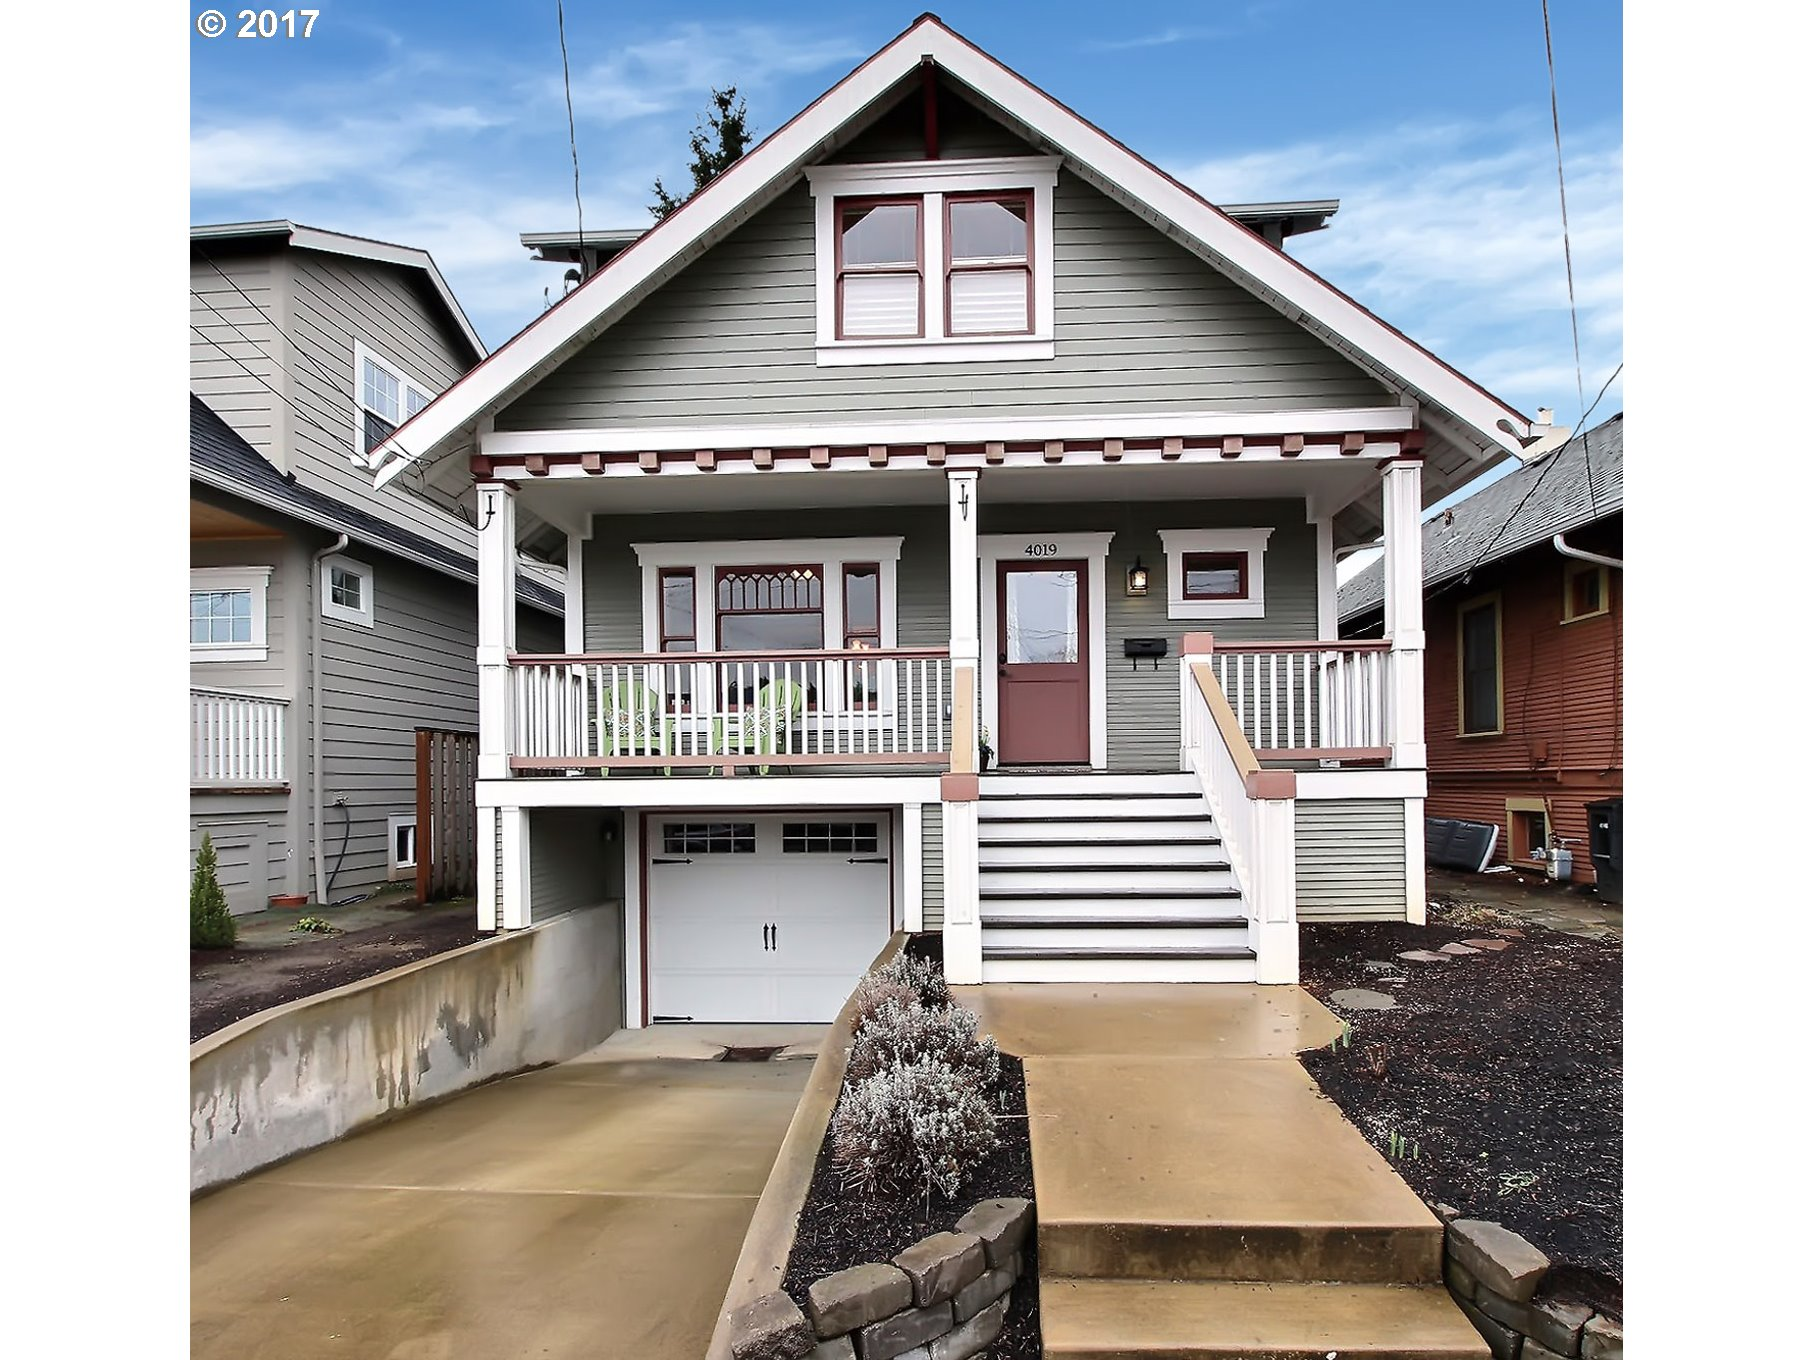 2644 sq. ft 4 bedrooms 2 bathrooms  House For Sale,Portland, OR